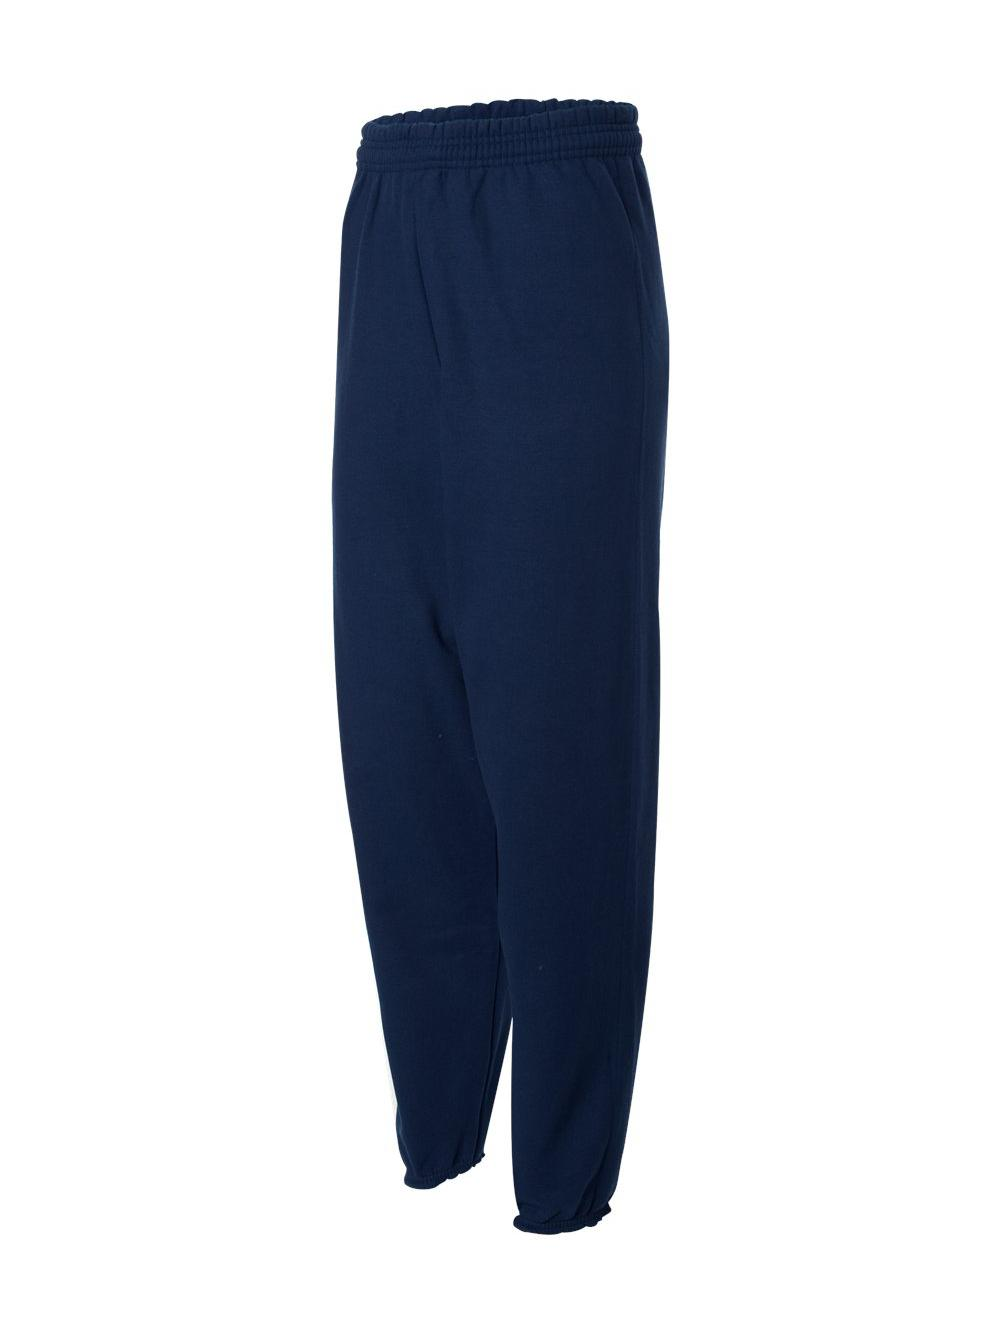 3d2811310 Hanes Mens Ecosmart Fleece Sweatpant Navy L. About this product. Picture 1  of 4; Picture 2 of 4; Picture 3 of 4 ...